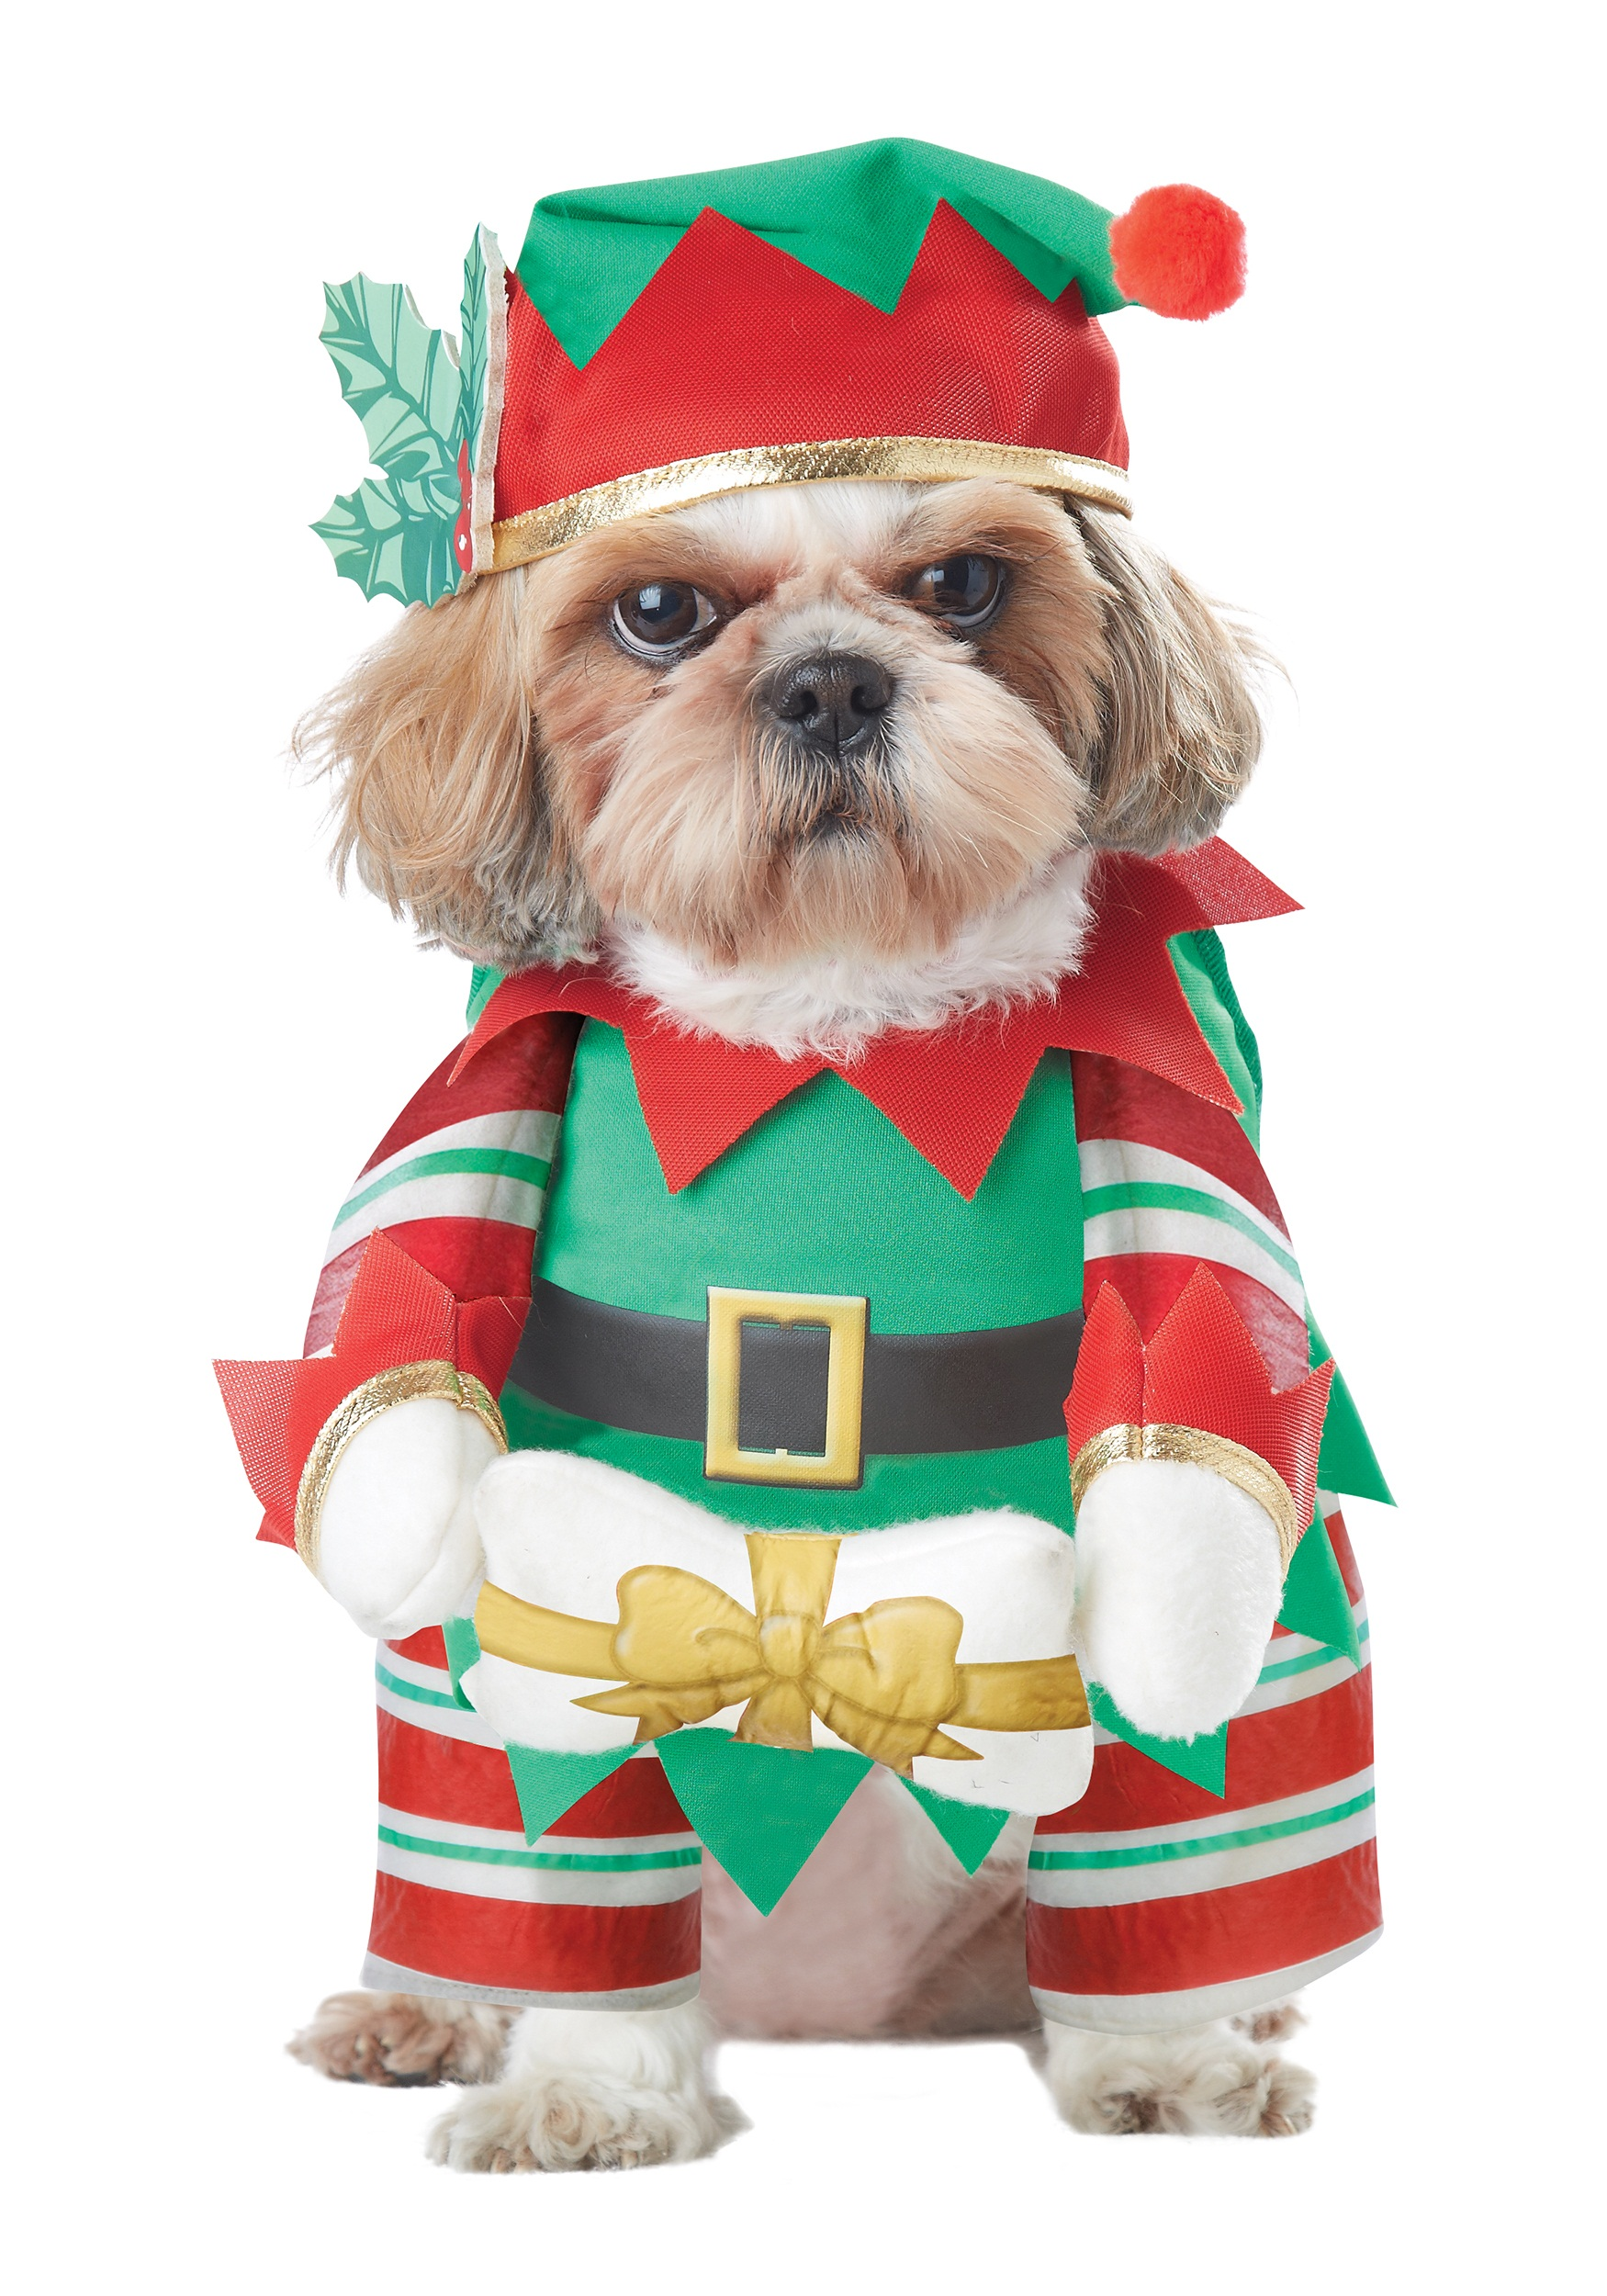 Elf Costume Dog photo - 1